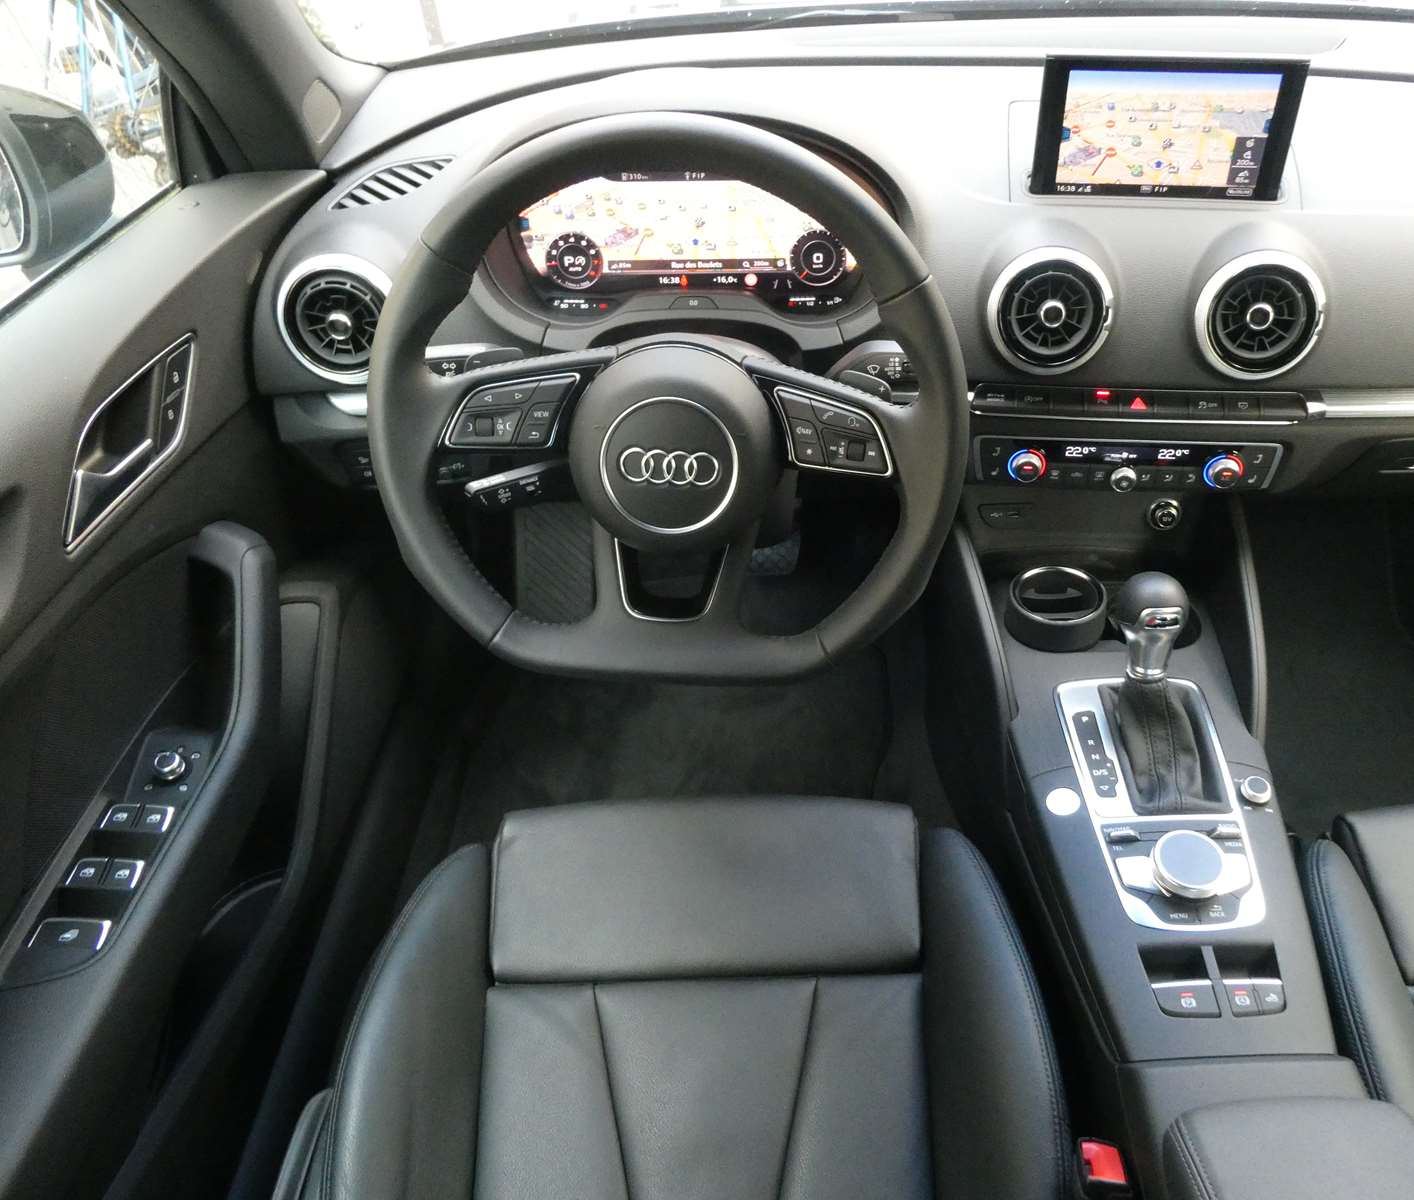 Audi A3 (2) cabriolet 35 TFSI 150 Design luxe S tronic 7 19